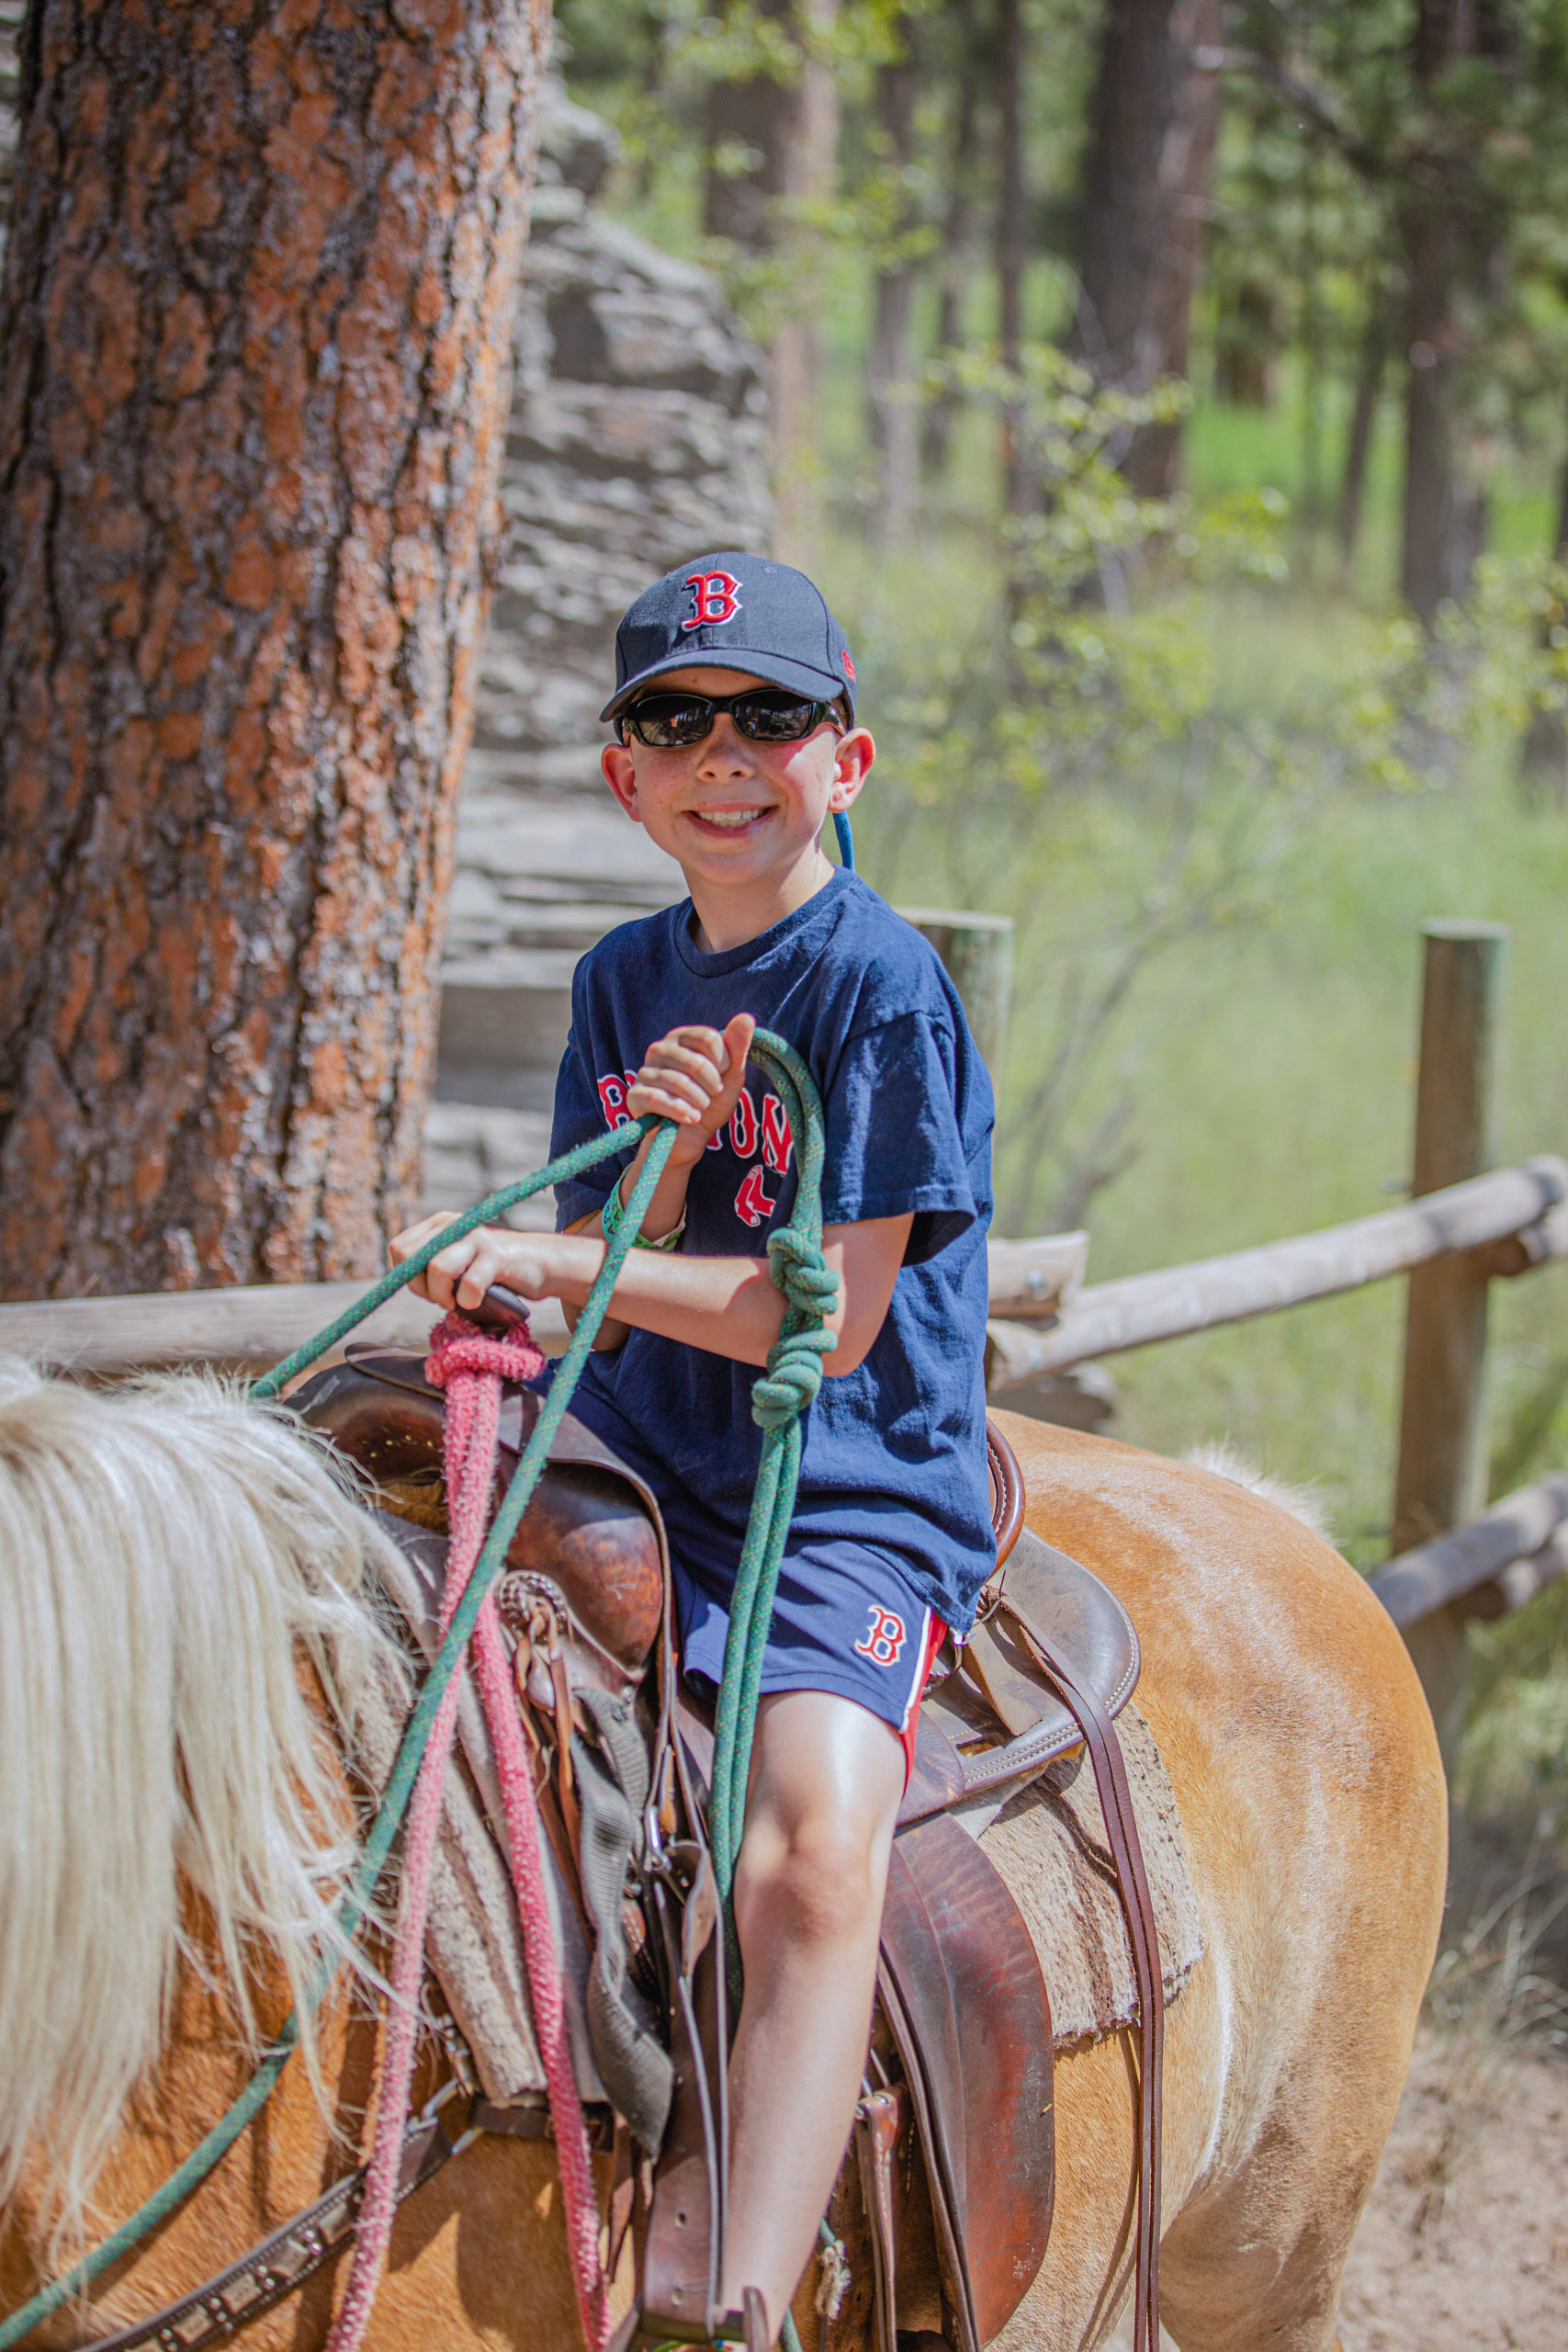 Nate horseback riding (photo credit: How I See It Photography)